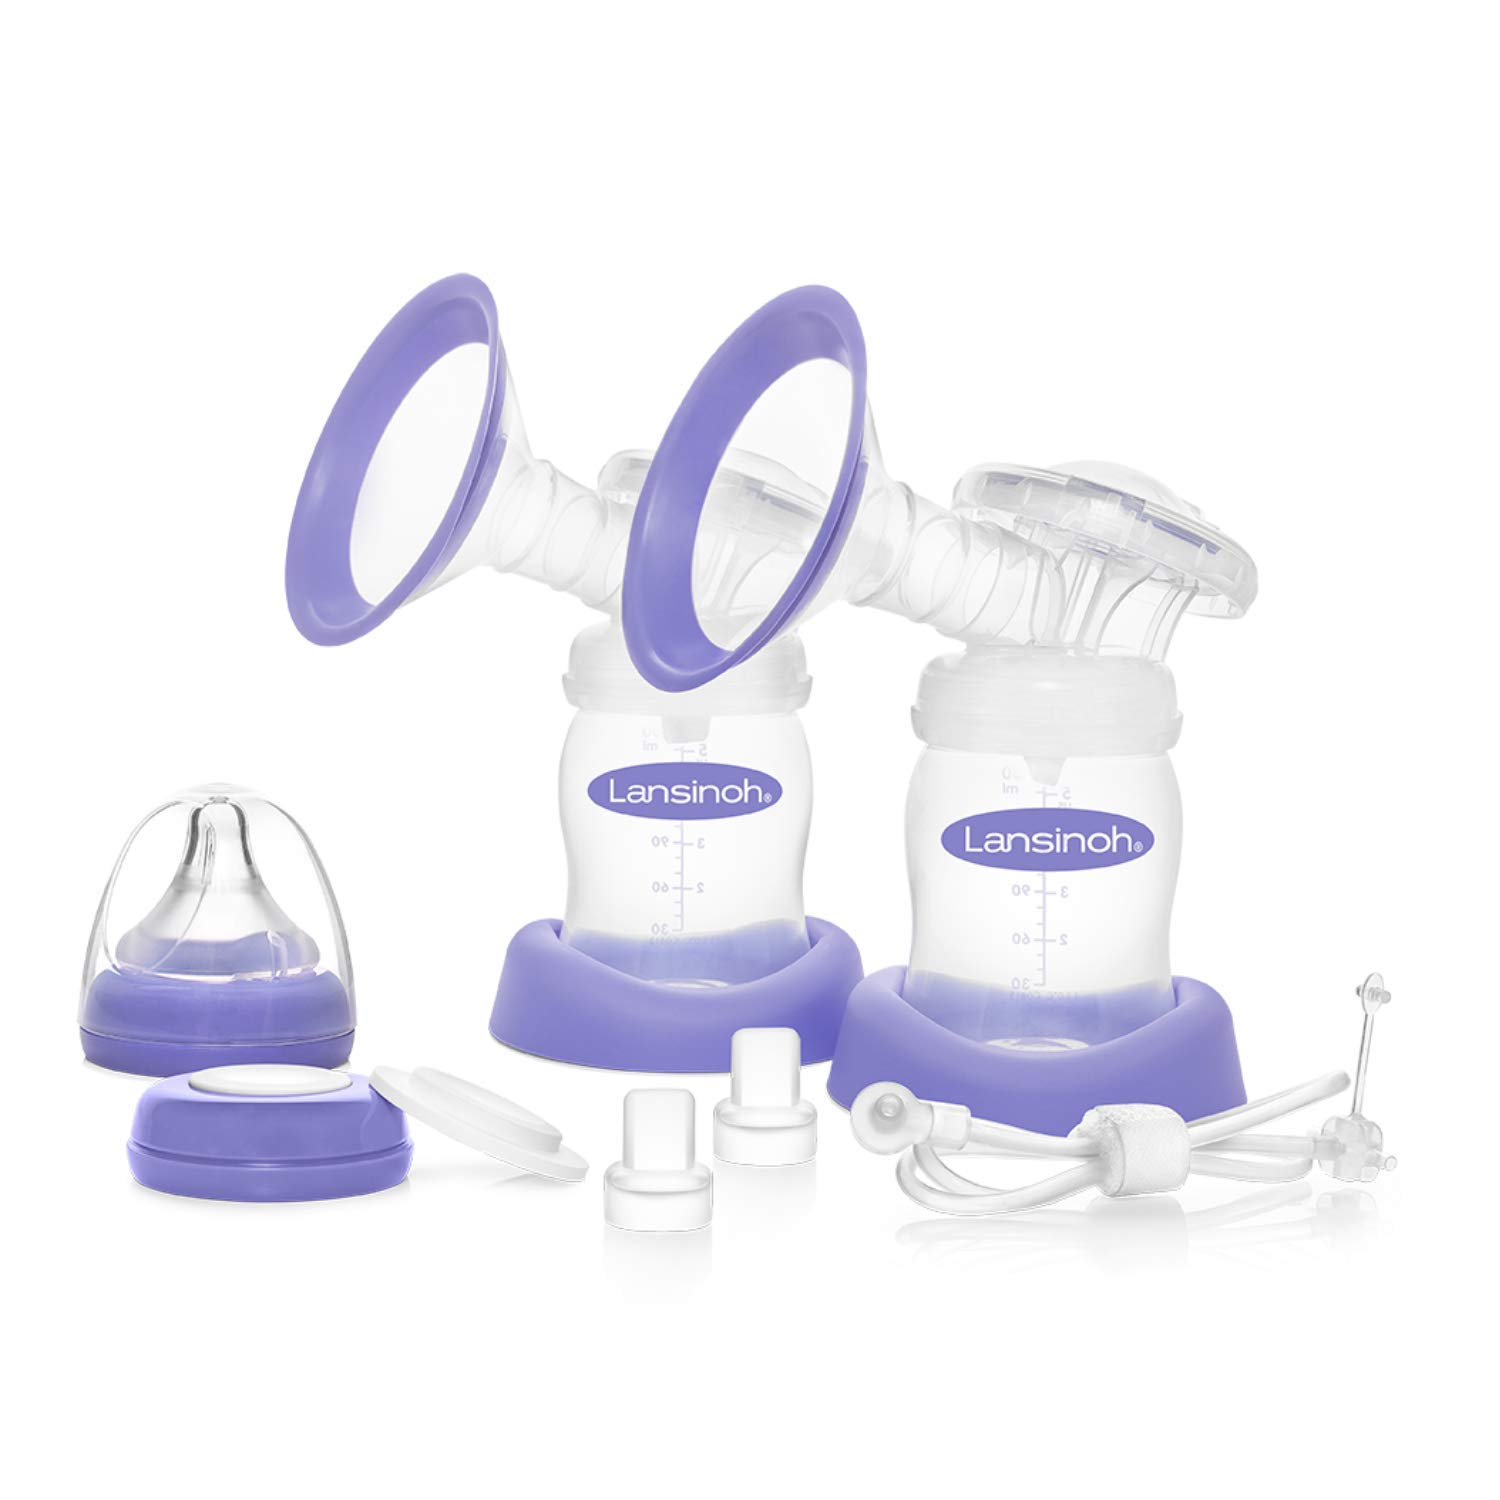 Lansinoh Extra Pumping Set Pump Parts with 2 Breast Cups, 2 Collection Bottles, Tubing, and Parts for Smartpump or Signature Pro Double Electric, Pumping Essentials